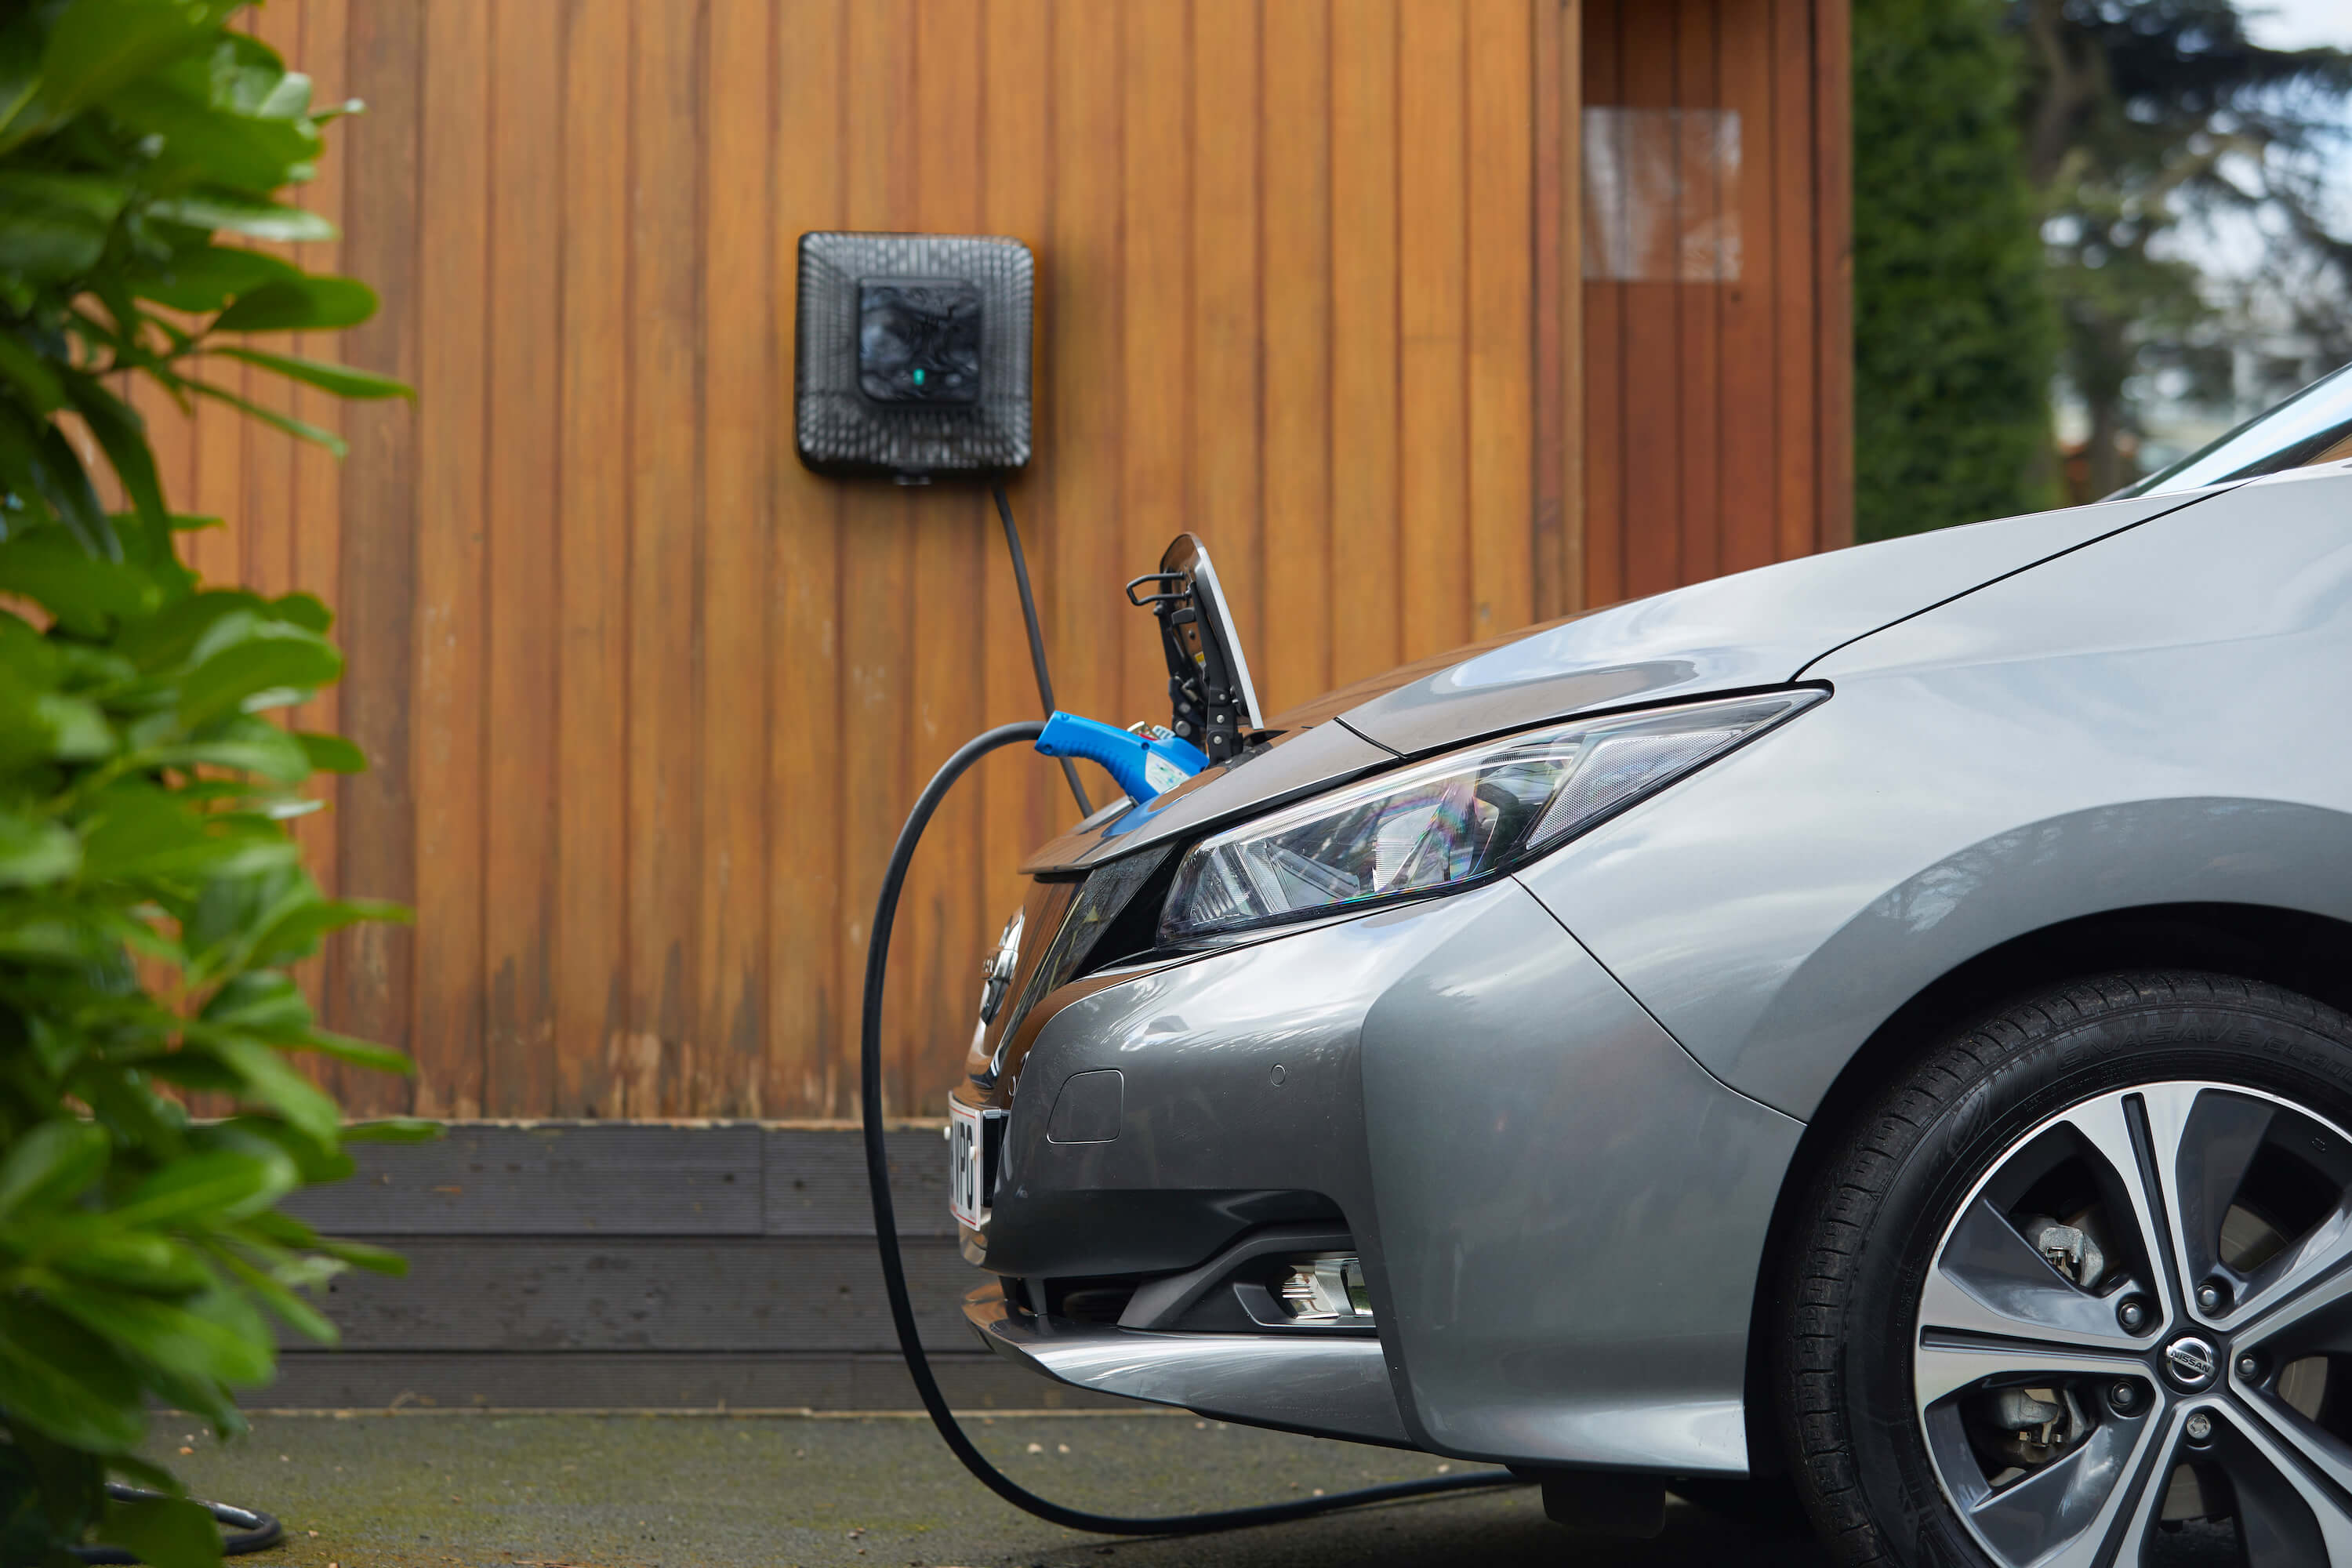 Wallbox solution allows drivers to transfer energy into the grid (Credit: Electric Nation)